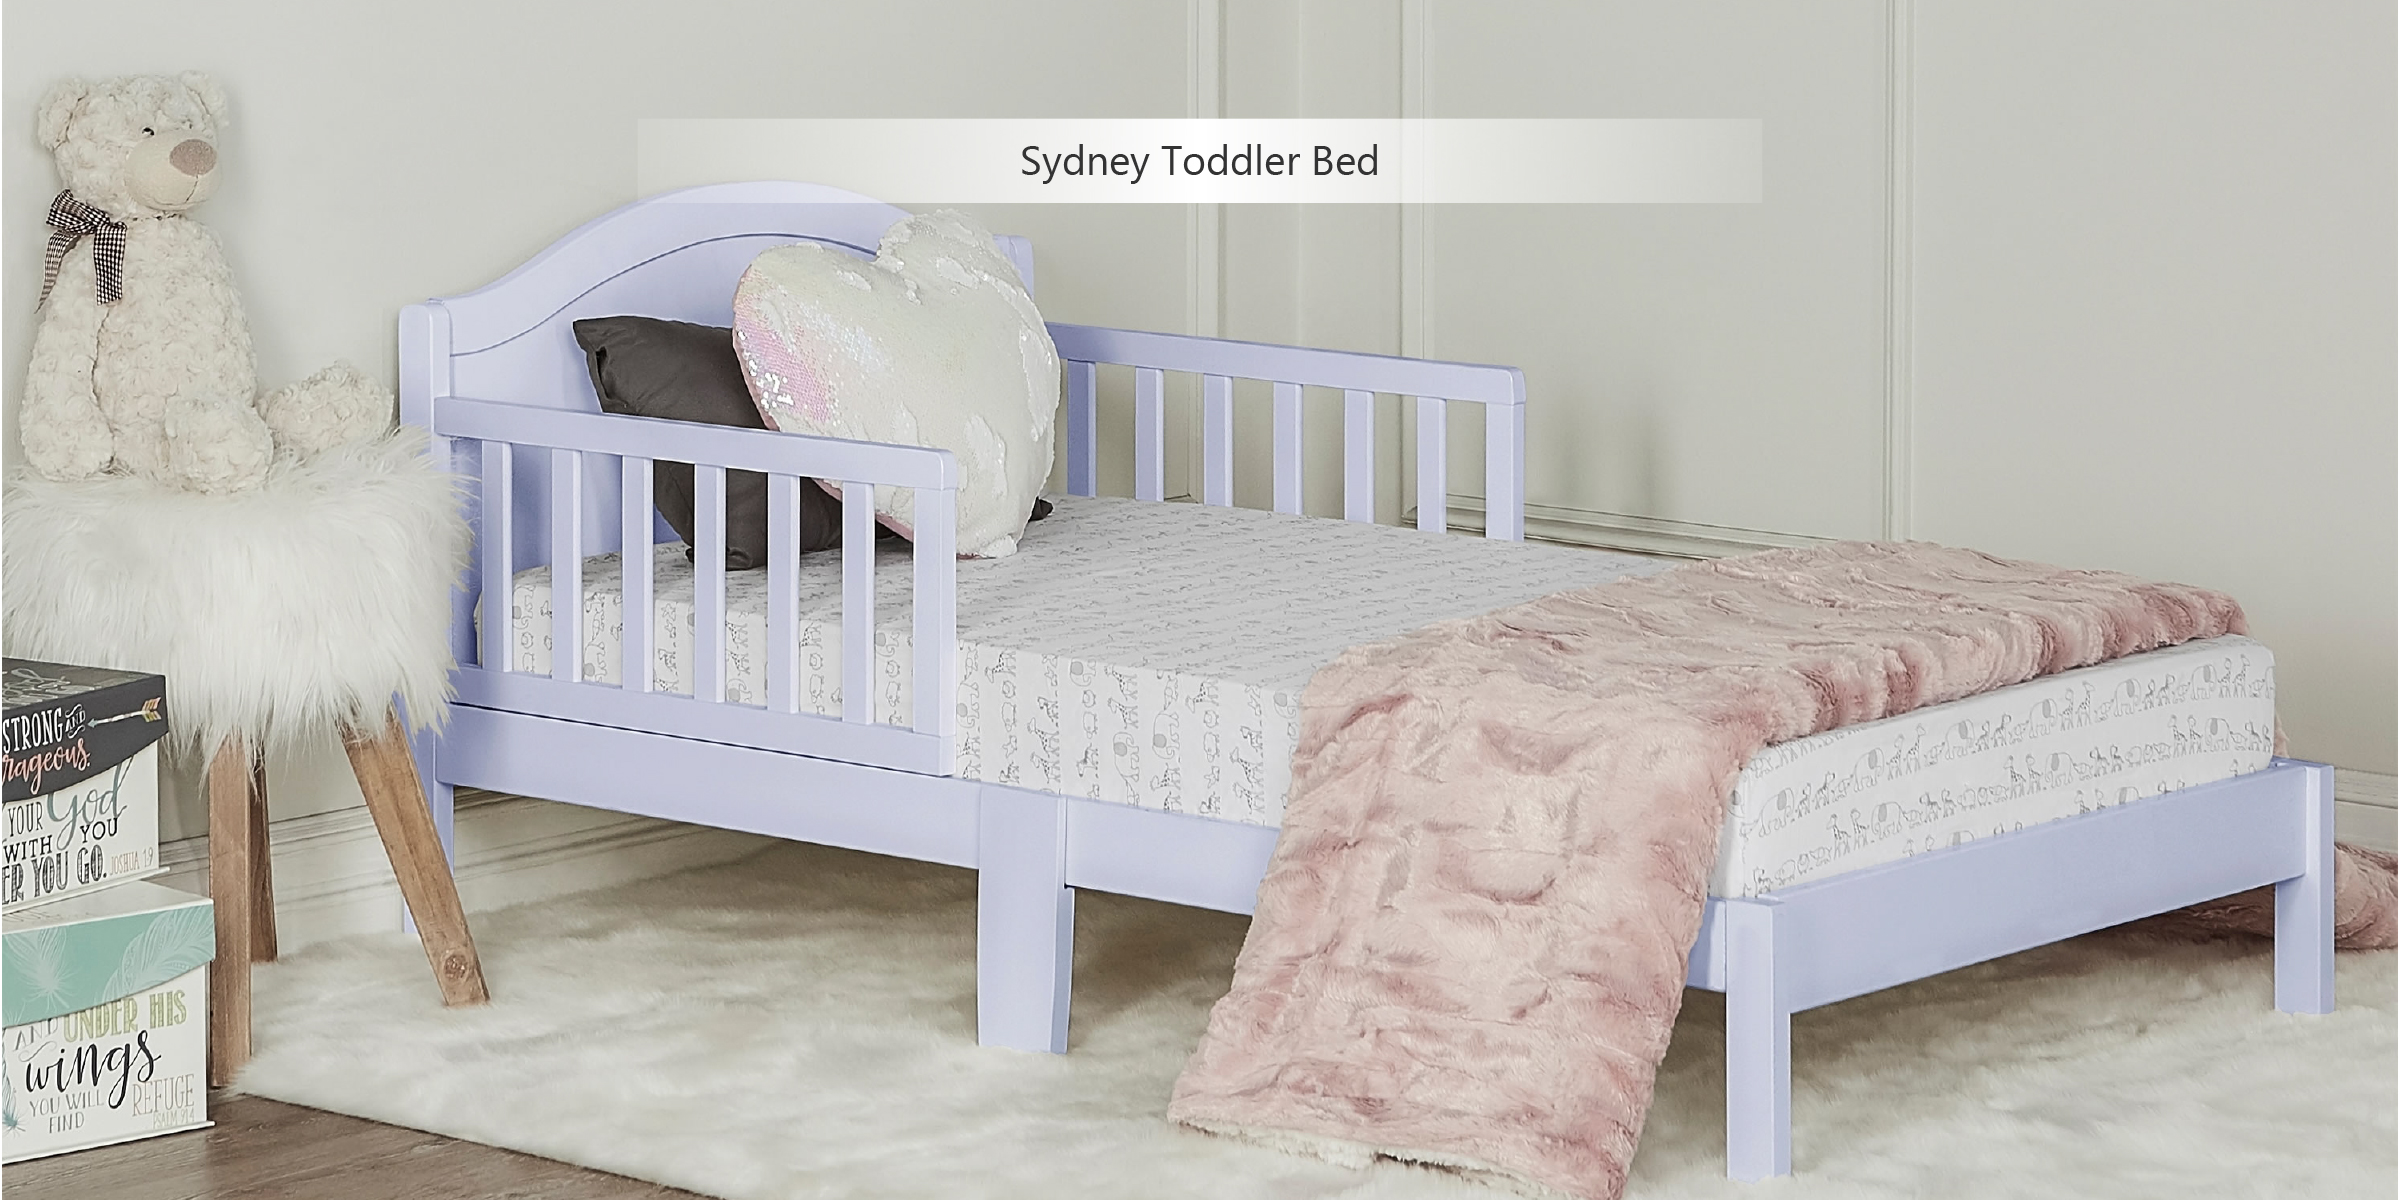 Sydney-Toddler-Bed